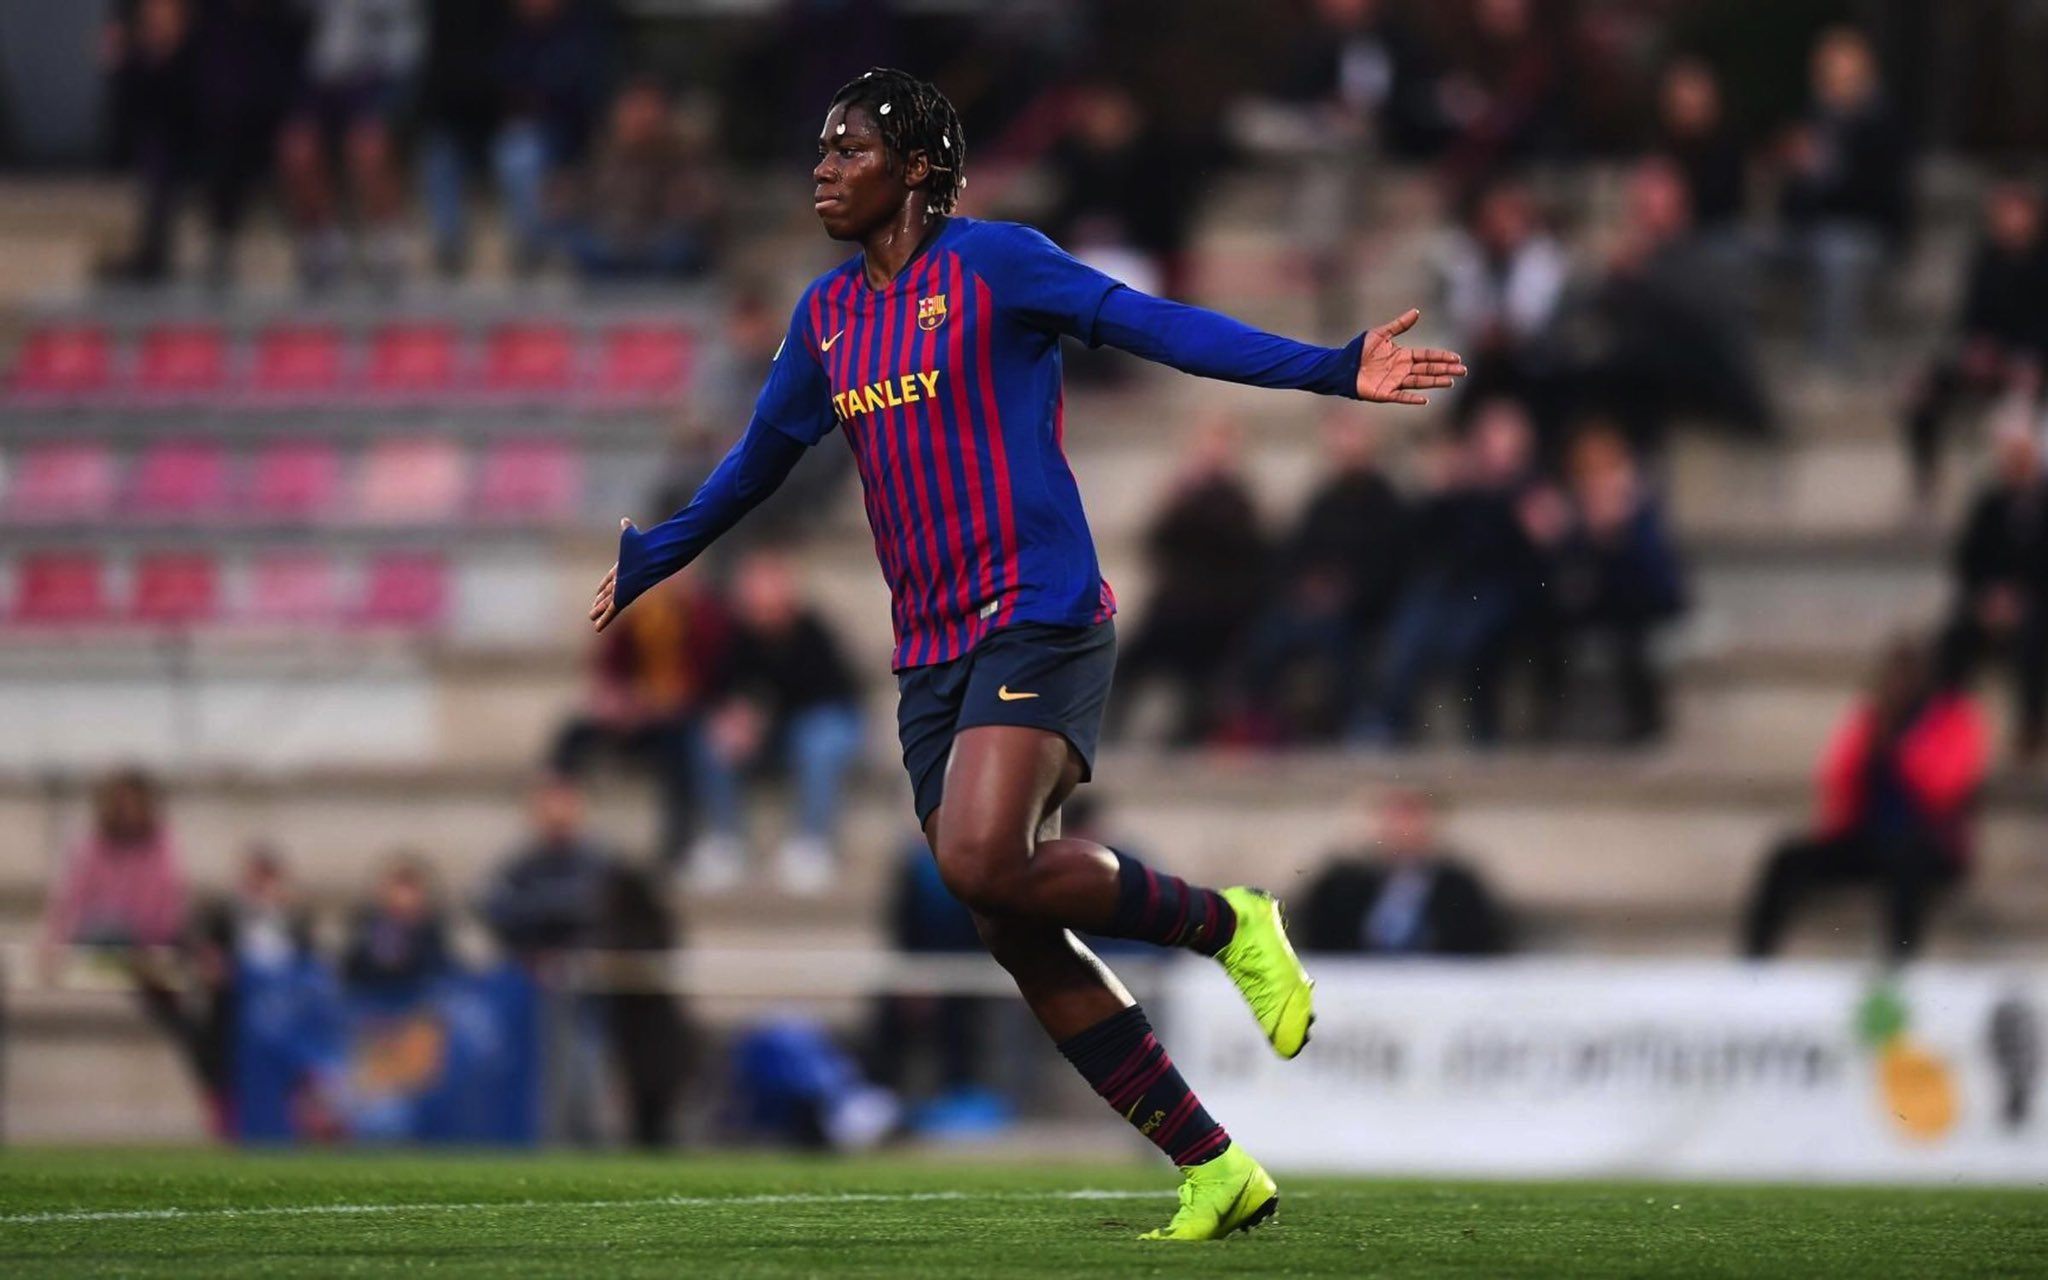 Oshoala Grabs Hat-trick In Barcelona Win Over AEM Lleida